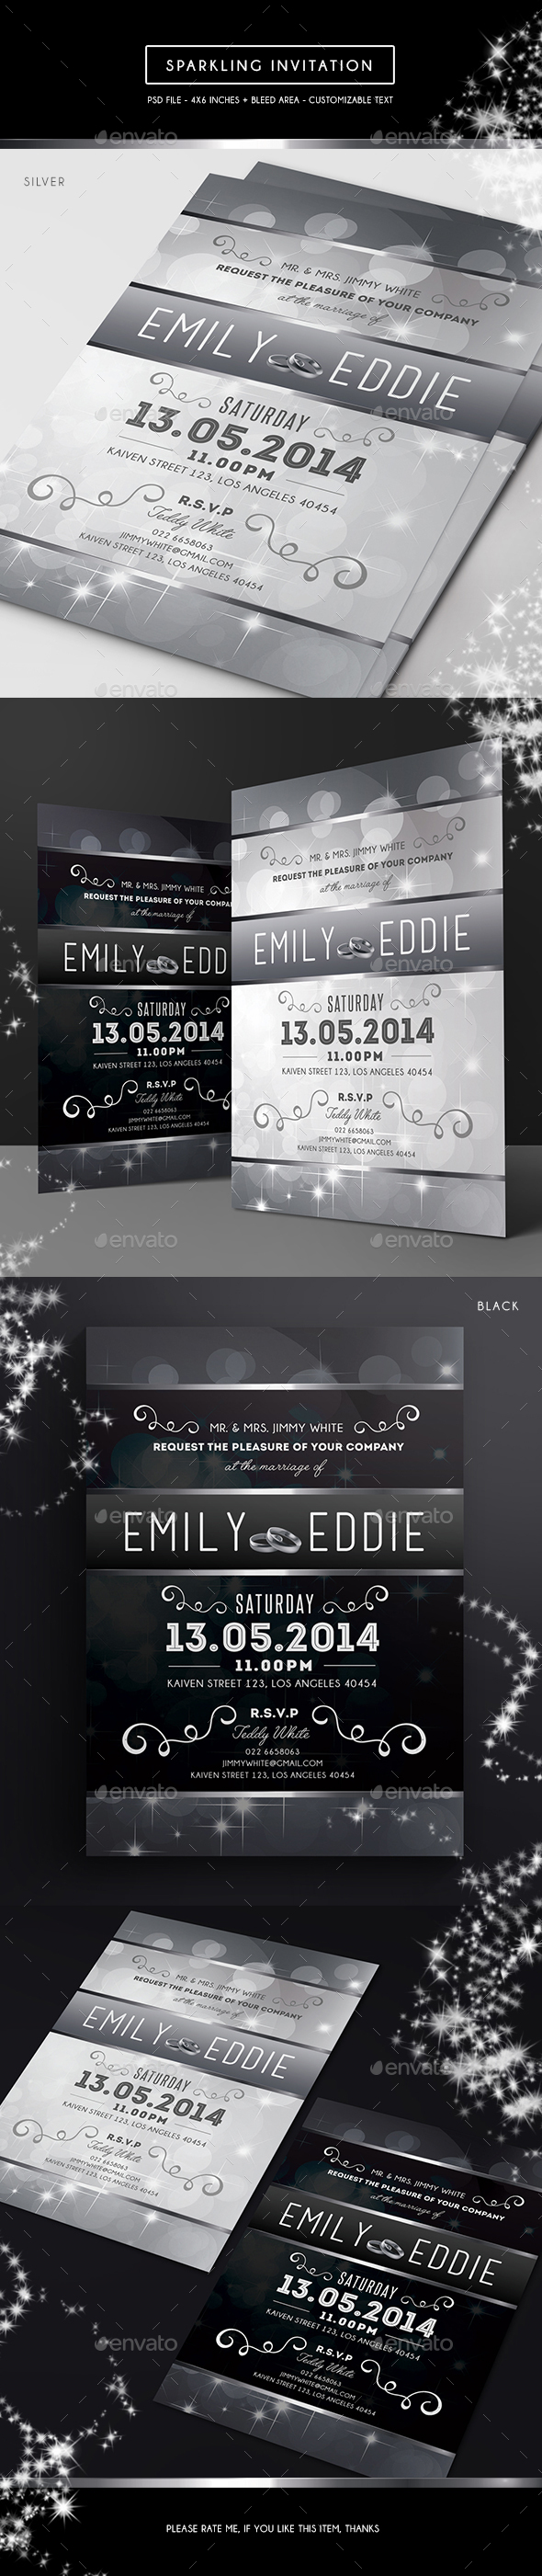 Sparkling Invitation - Weddings Cards & Invites